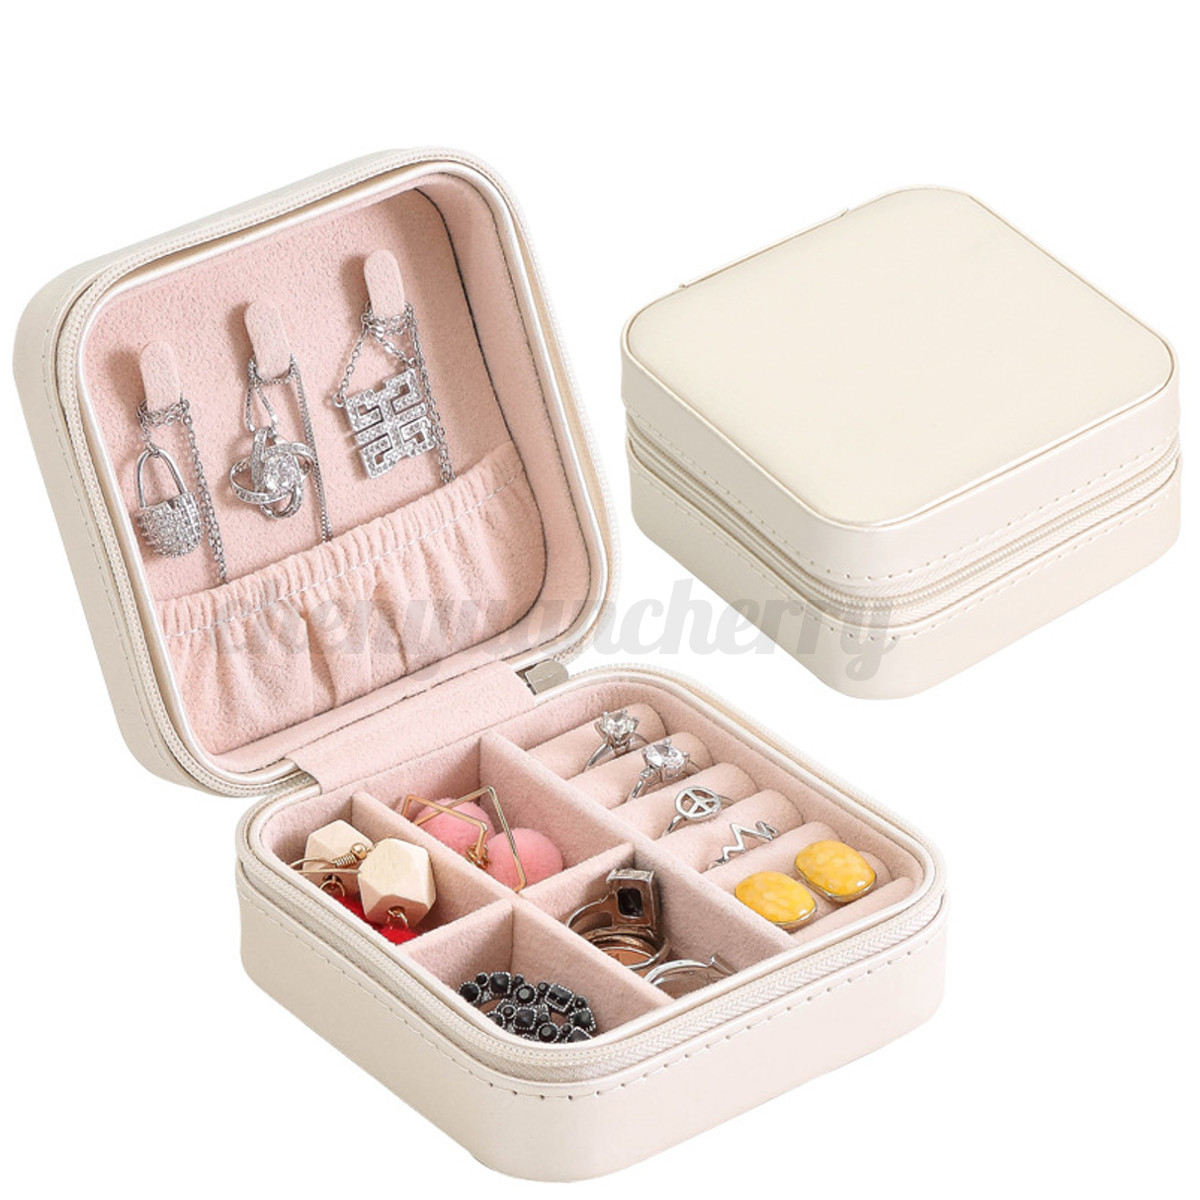 2-Colors-Travel-Jewelry-Box-Organizer-Leather-Jewellery-Ornaments-Case-Storage thumbnail 15